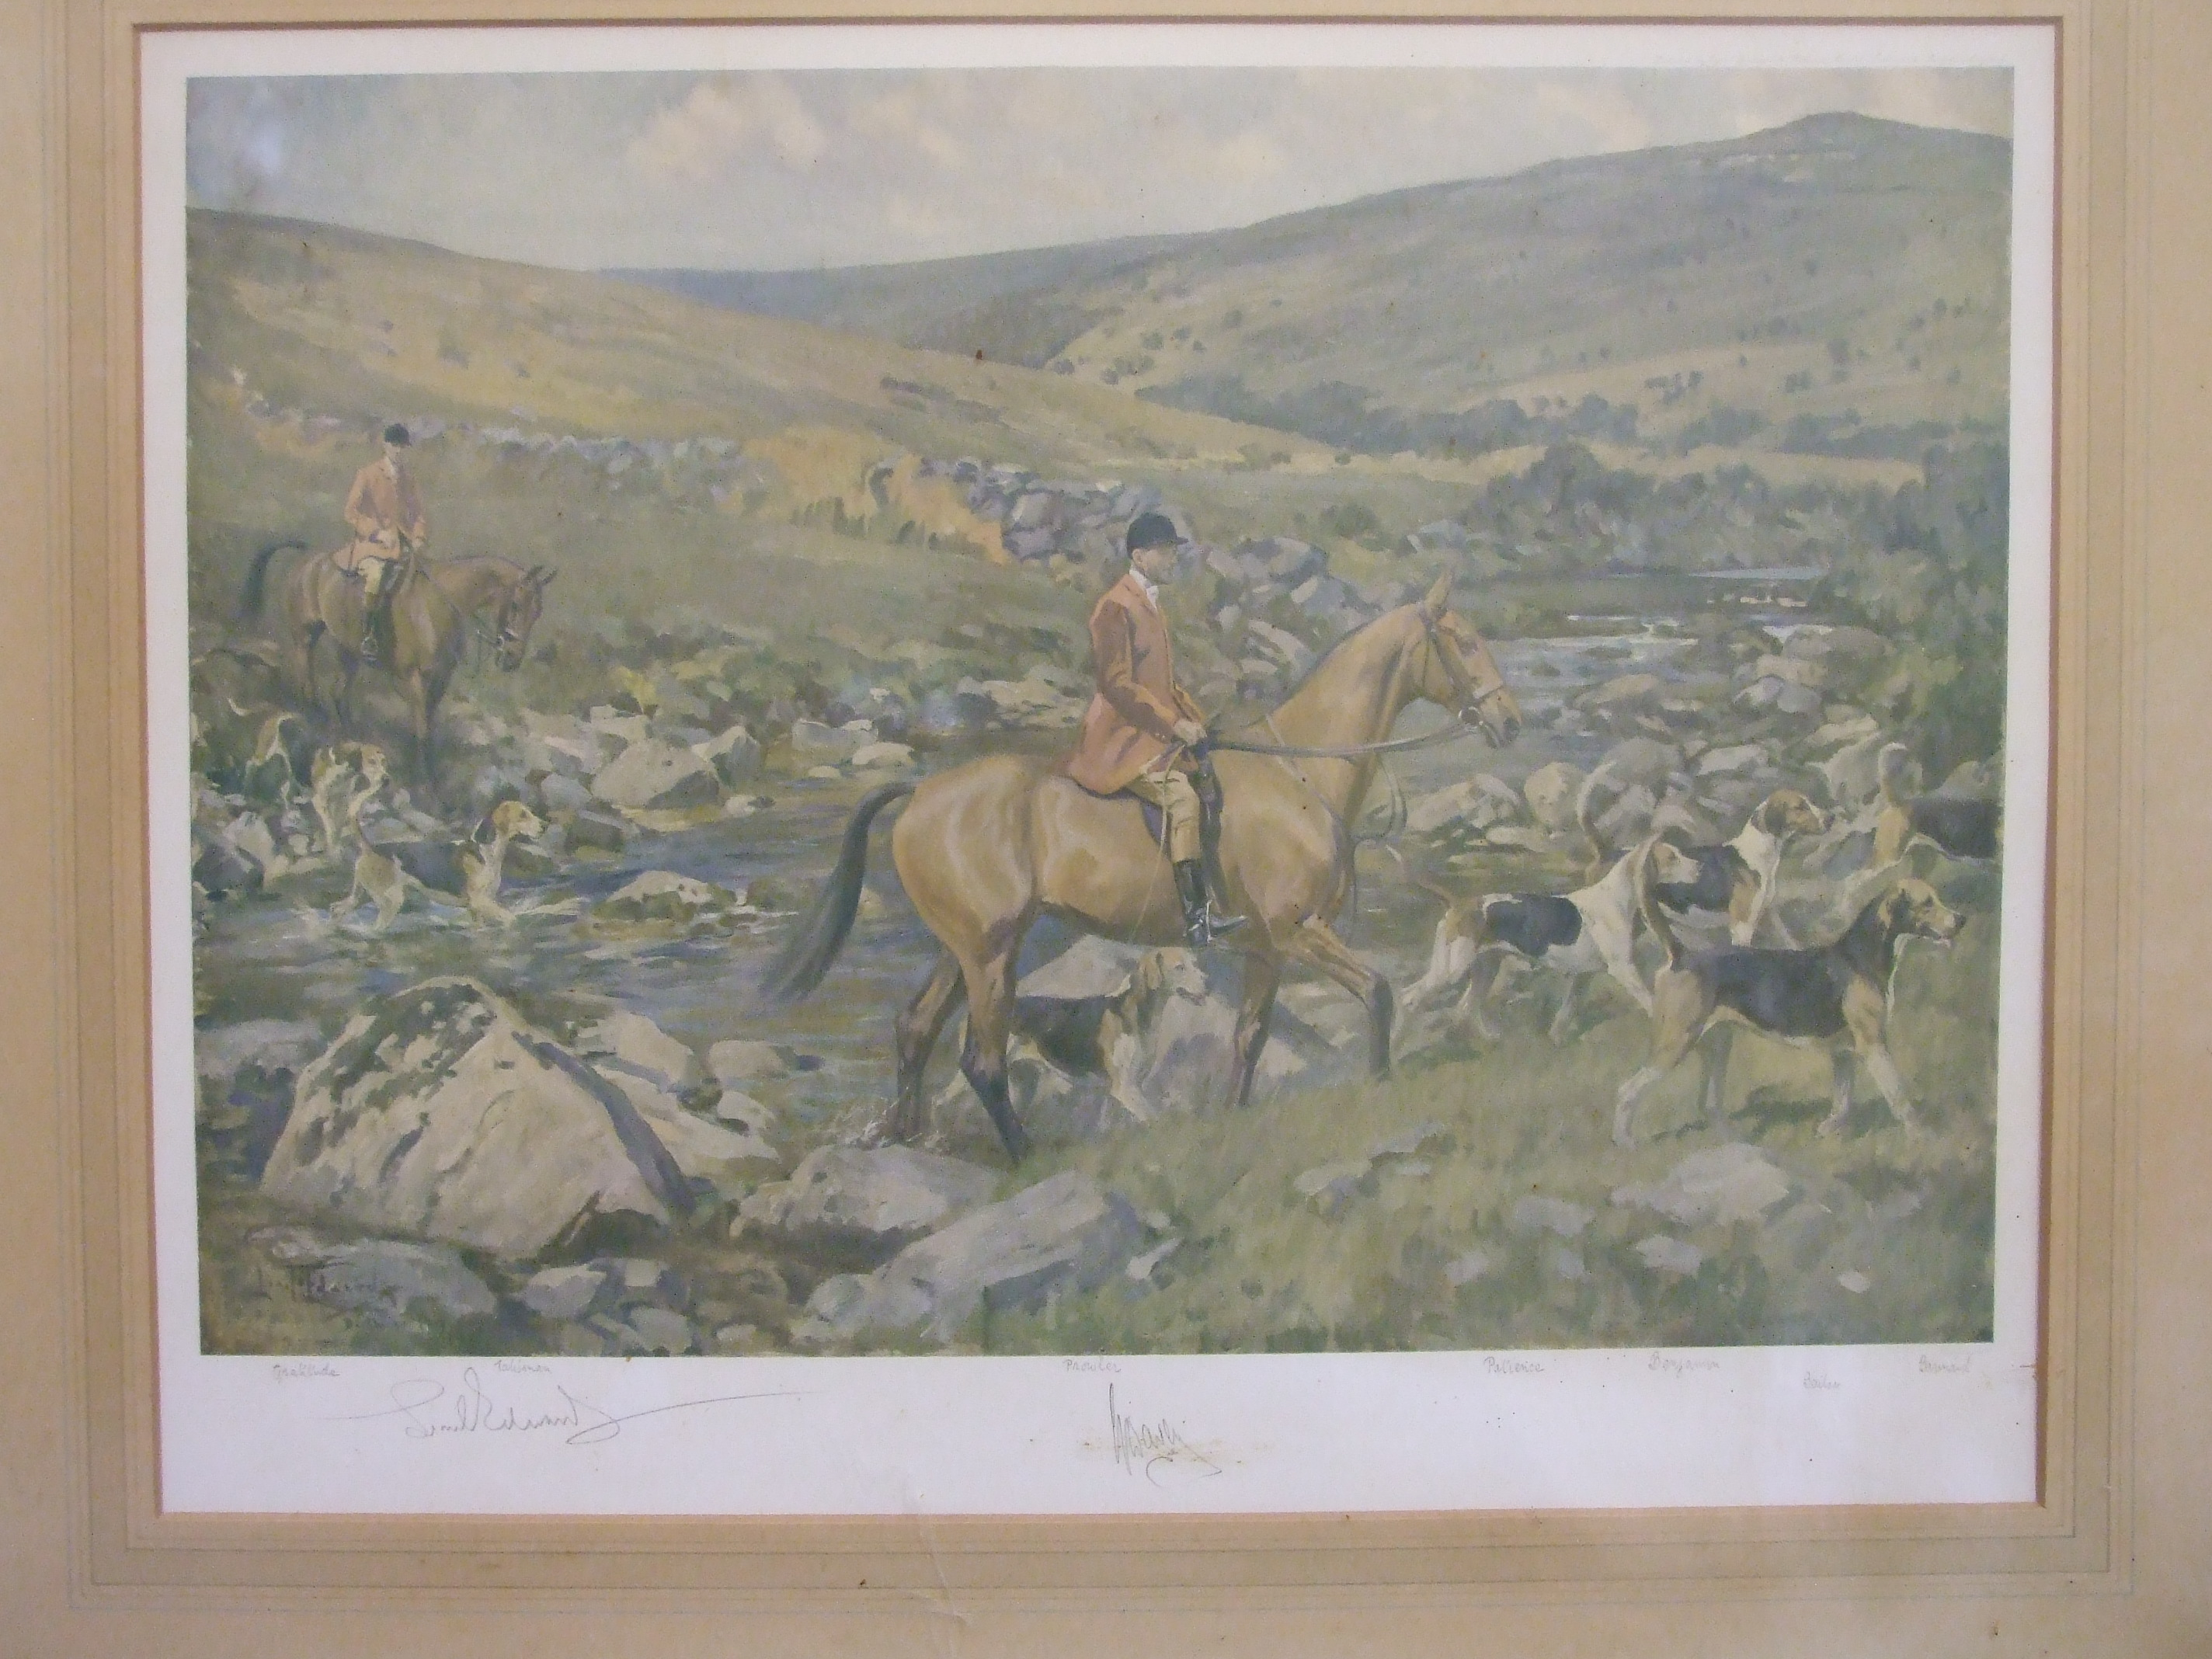 After Lionel Edwards, coloured lithographic print 'Dartmoor Hunt', signed in pencil, huntsman and